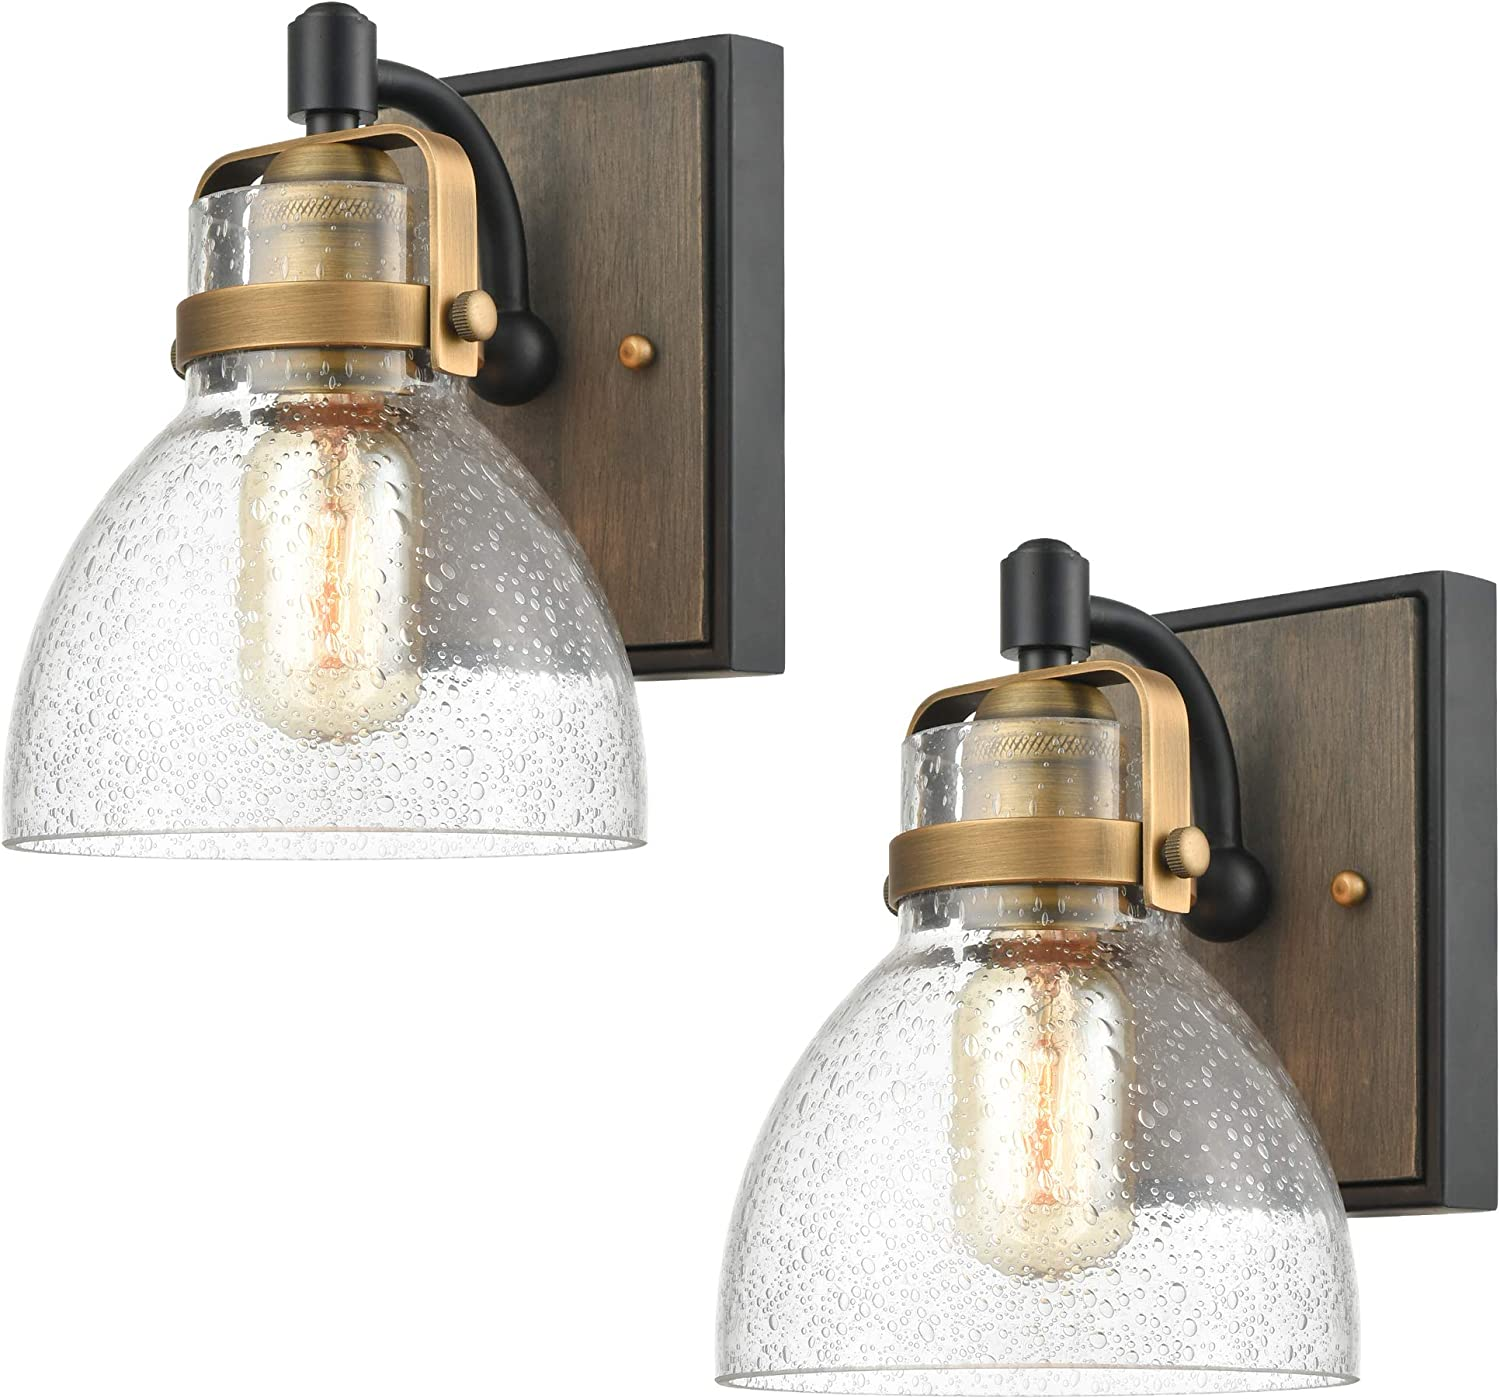 Wildsoul 40061bk 2 Modern Farmhouse 1 Light Armed Sconce Rustic Wood Backplate Glass Bathroom Vanity Wall Light Fixtures Handblown Dome Clear Seeded Glass Matte Black And Brass Finish Pack Of 2